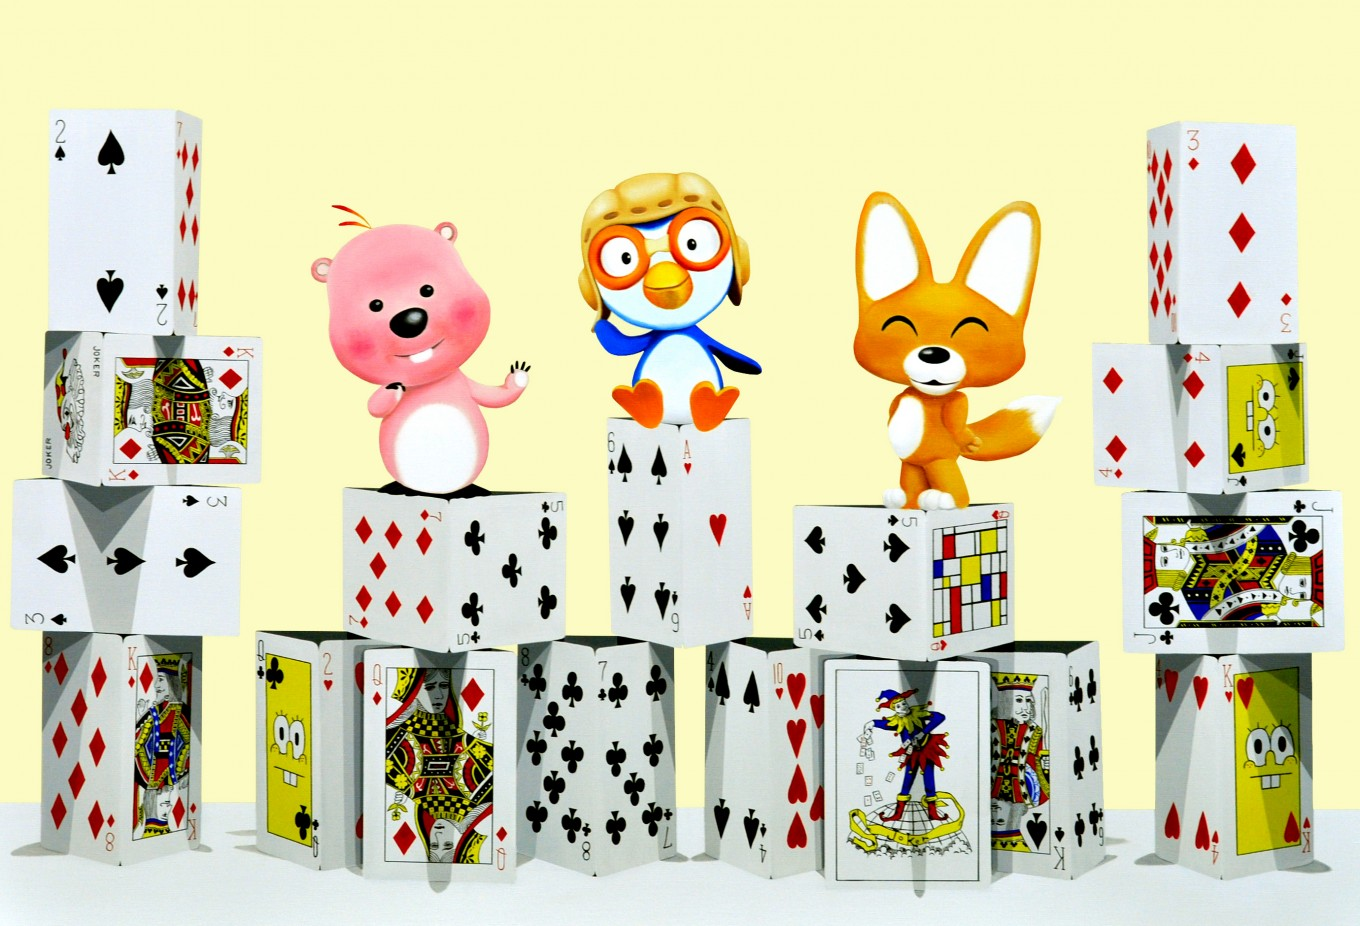 The tower of card - pororo friends_116.7x80.3cm oil on canvas 2015